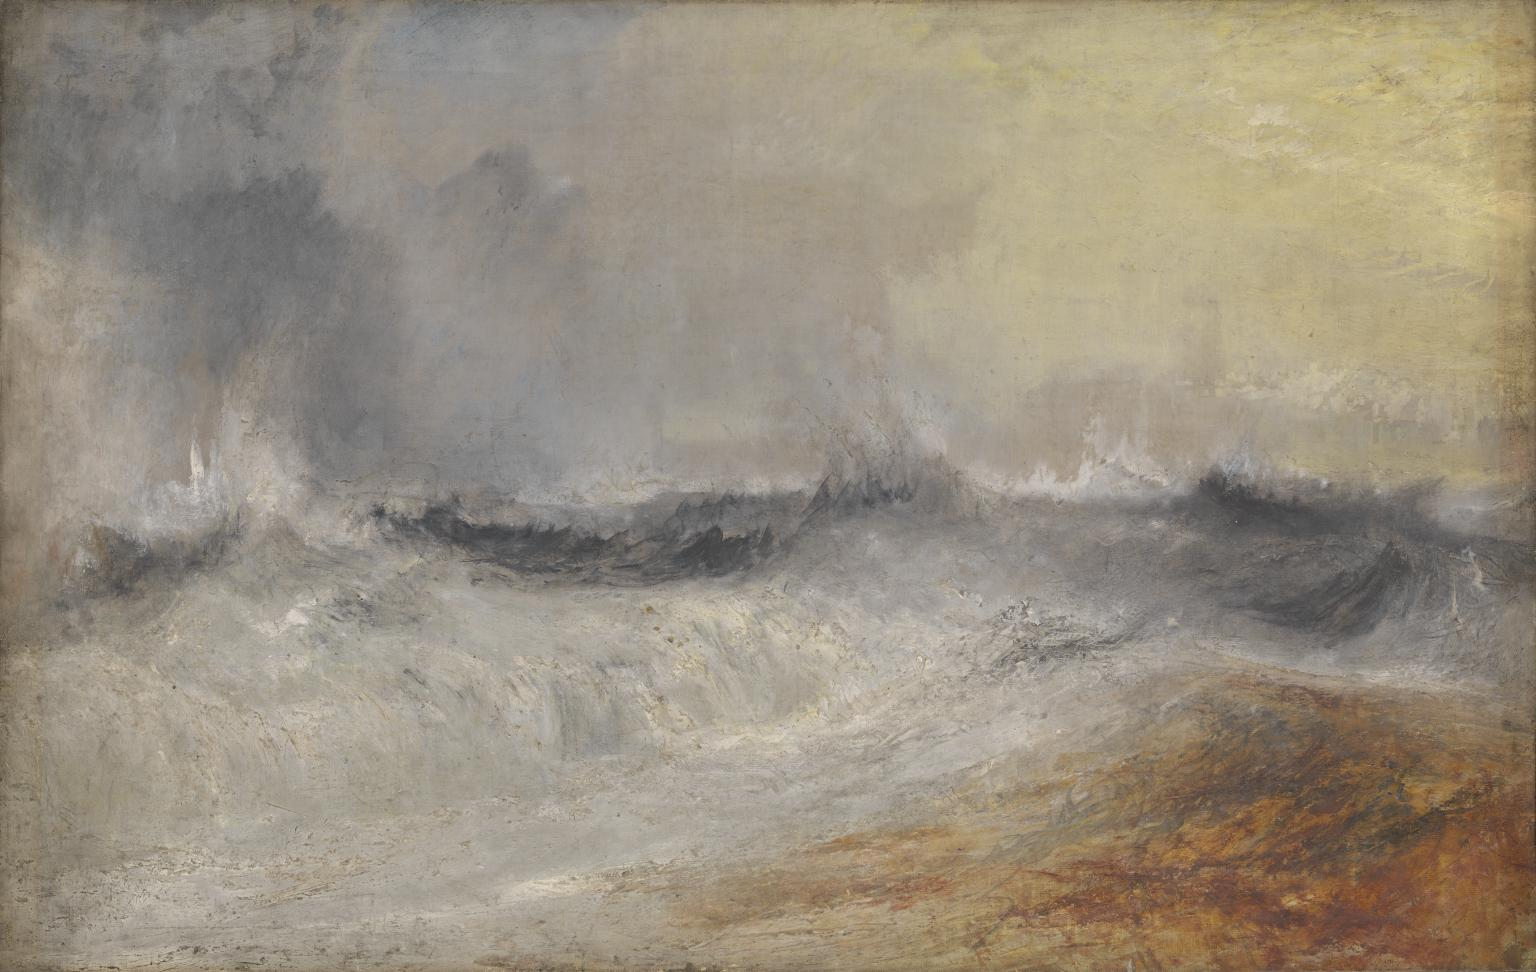 Waves Breaking against the Wind c.1840 by Joseph Mallord William Turner 1775-1851